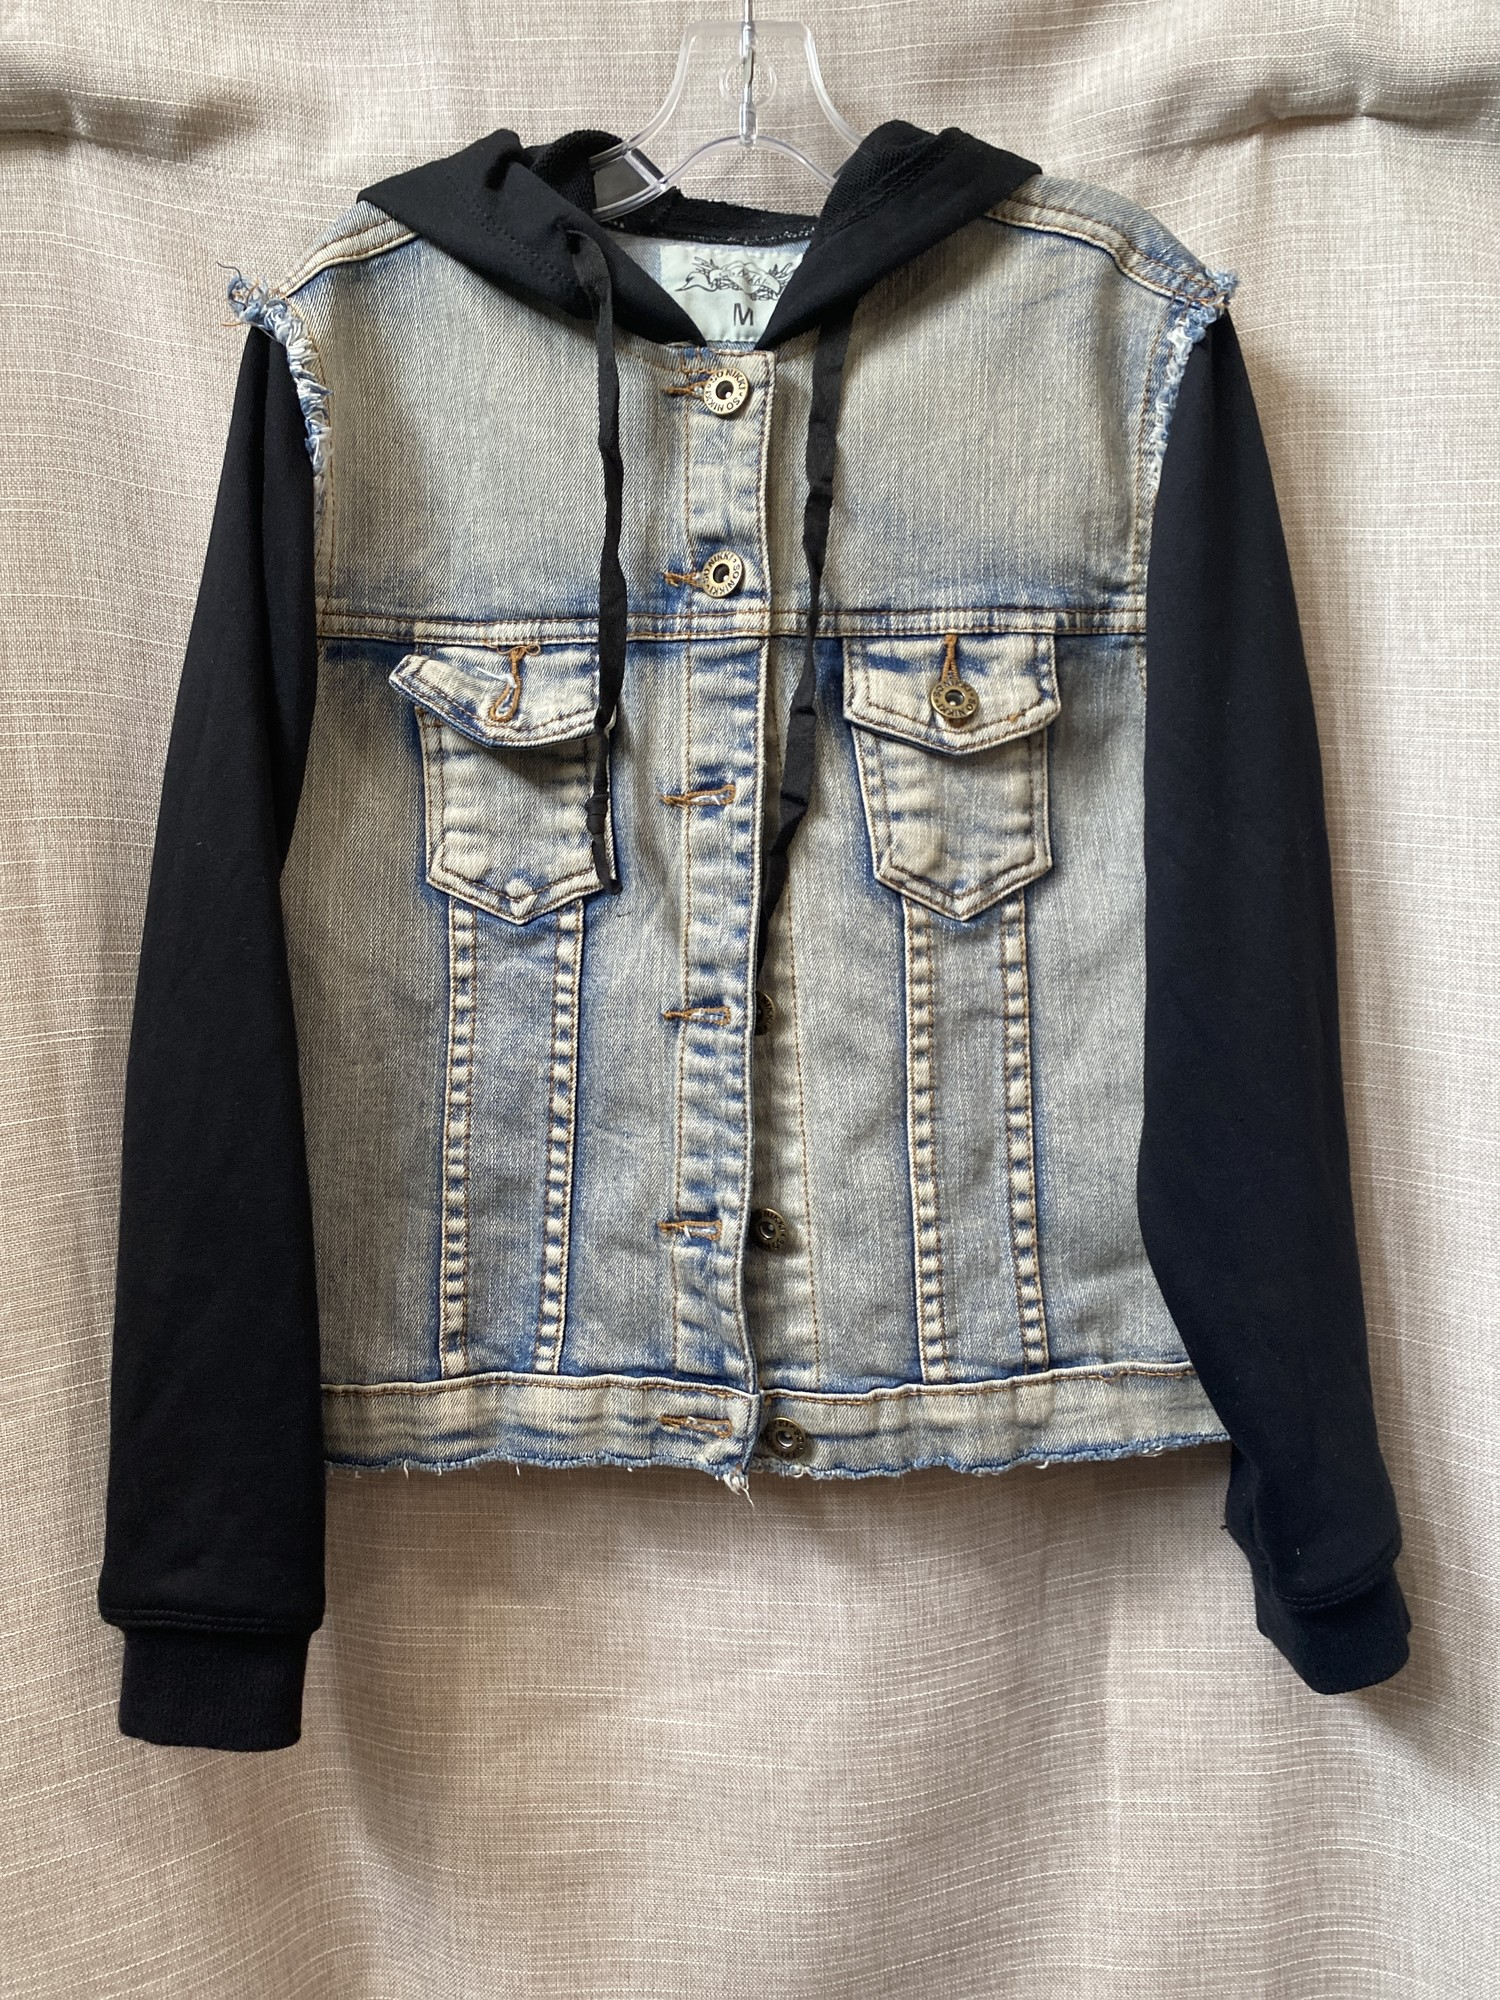 So Nikki, Denim/bl, Size: M/8/10